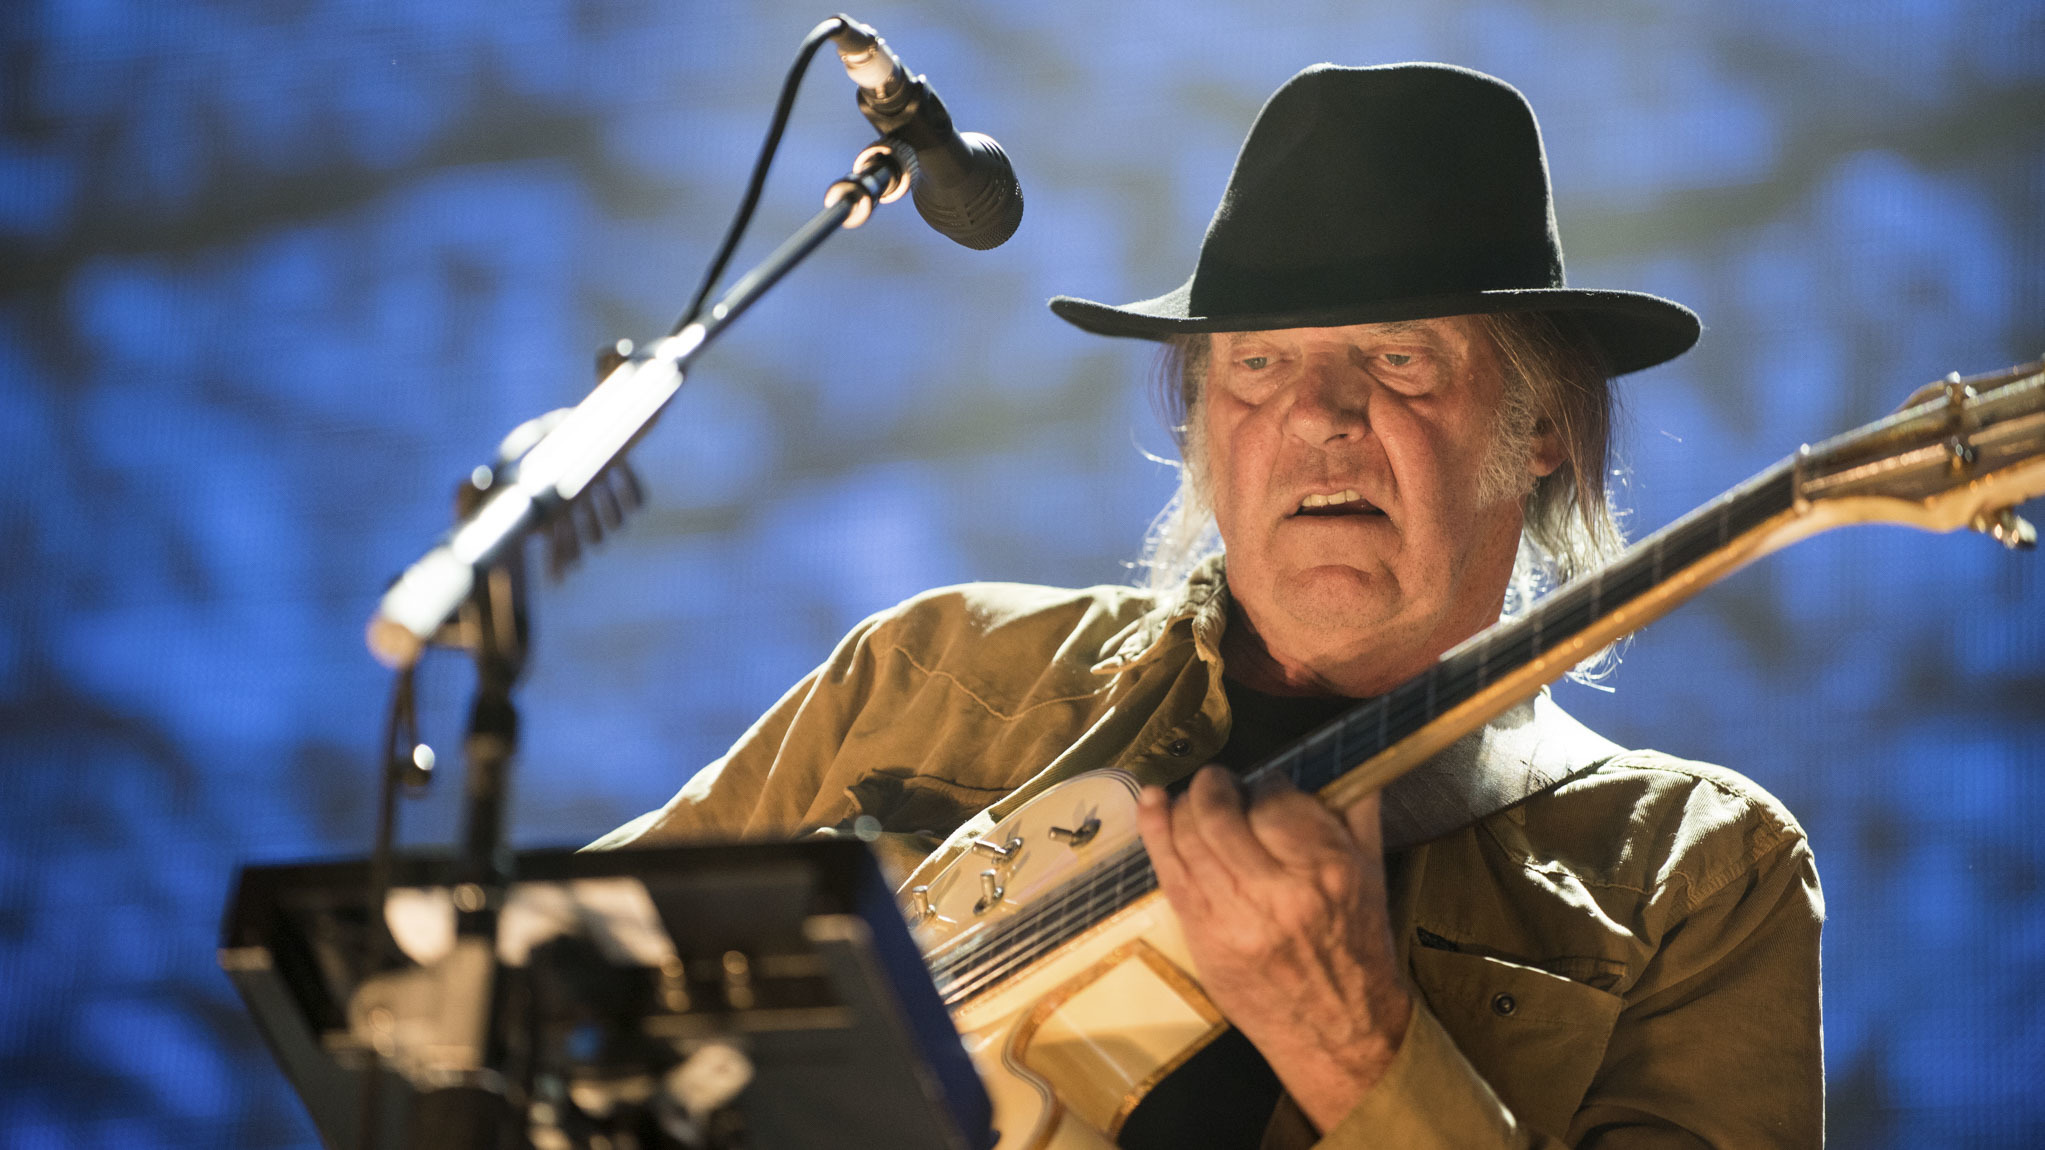 Neil Young performed at the FirstMerit Bank Pavilion at Northerly Island during Farm Aid 30, September 19, 2015.